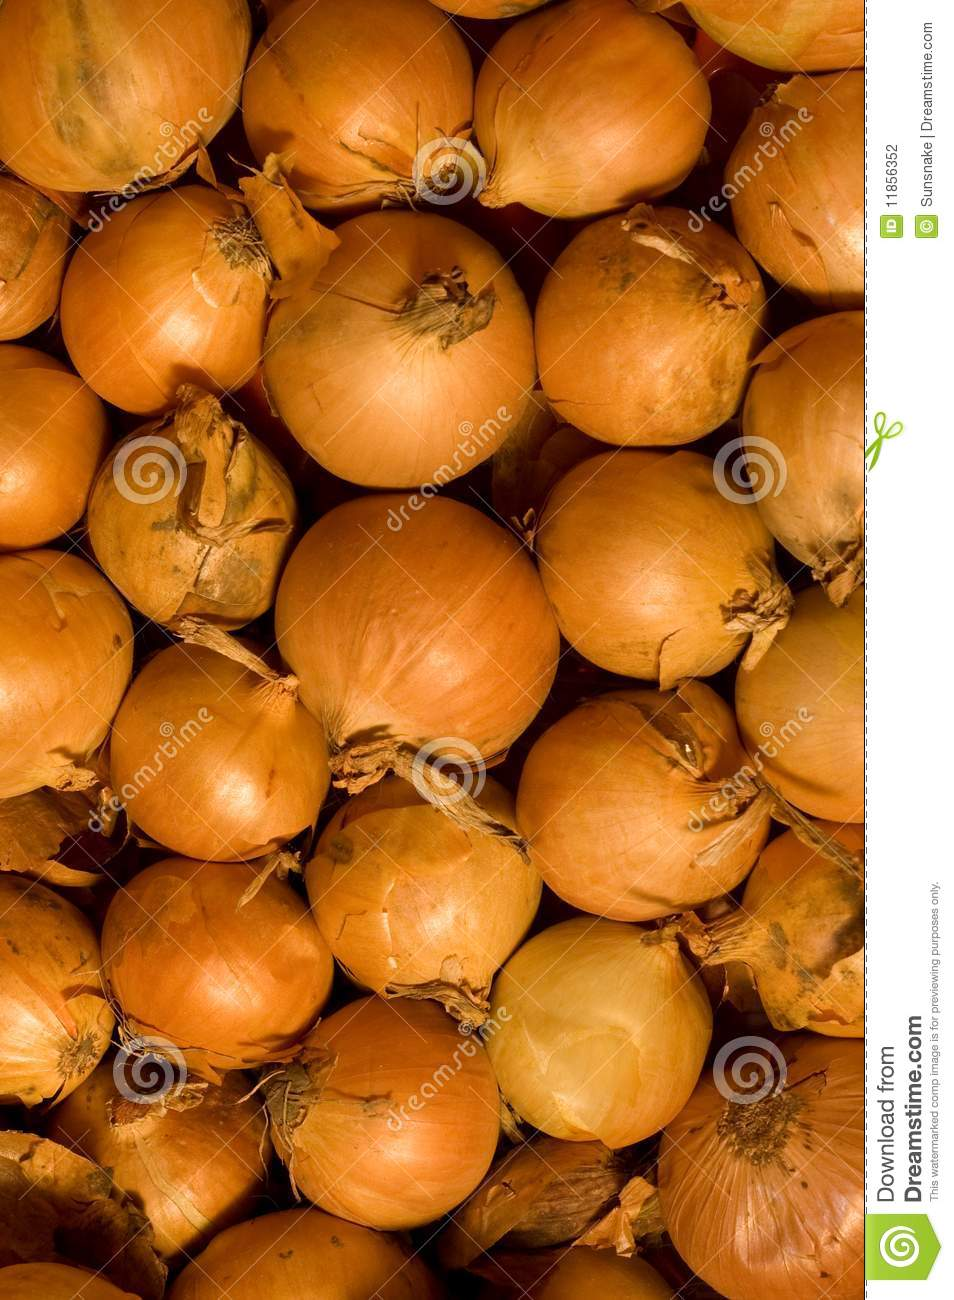 We offer over 13 Orange Onions coupons for 30% sitewide savings, plus check our hand-picked promo codes, exclusive offers and much more.